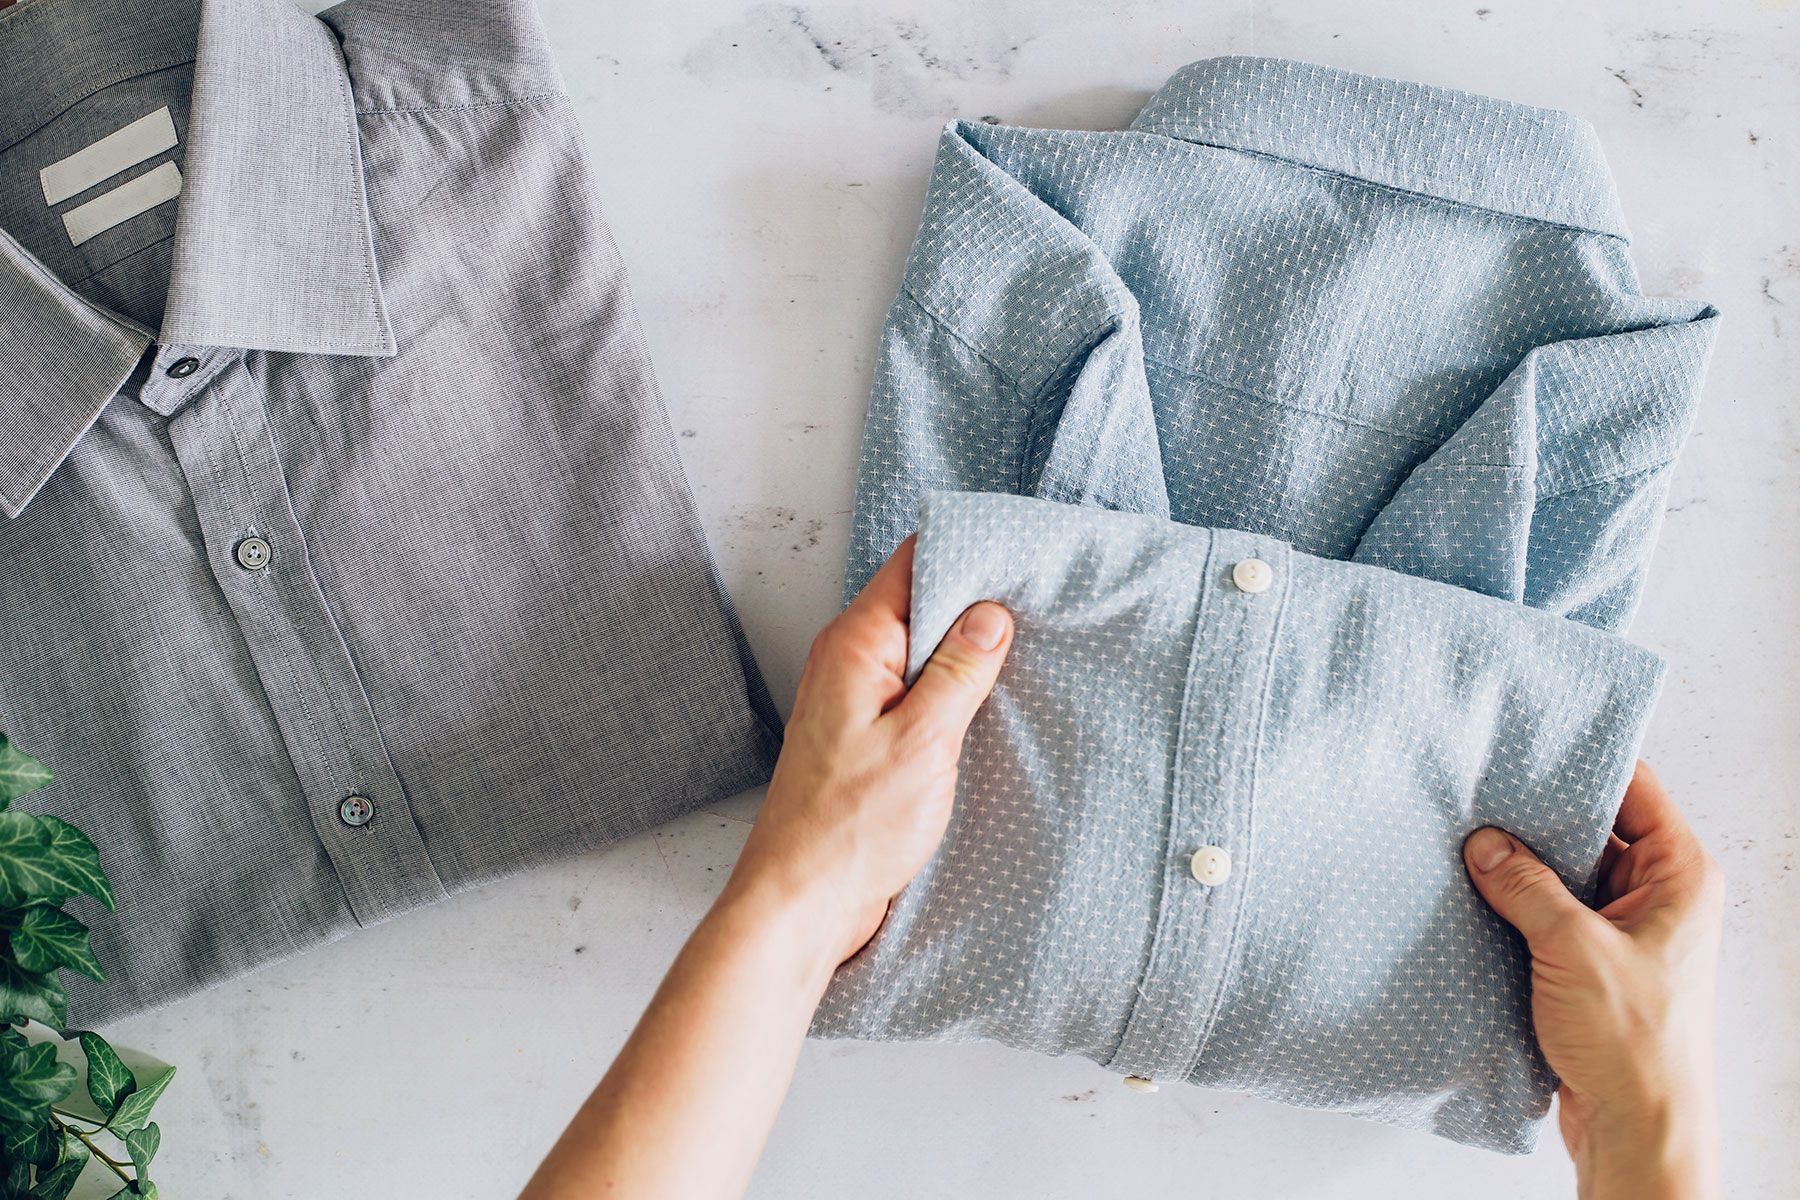 Which is the easiest way to fold a shirt?